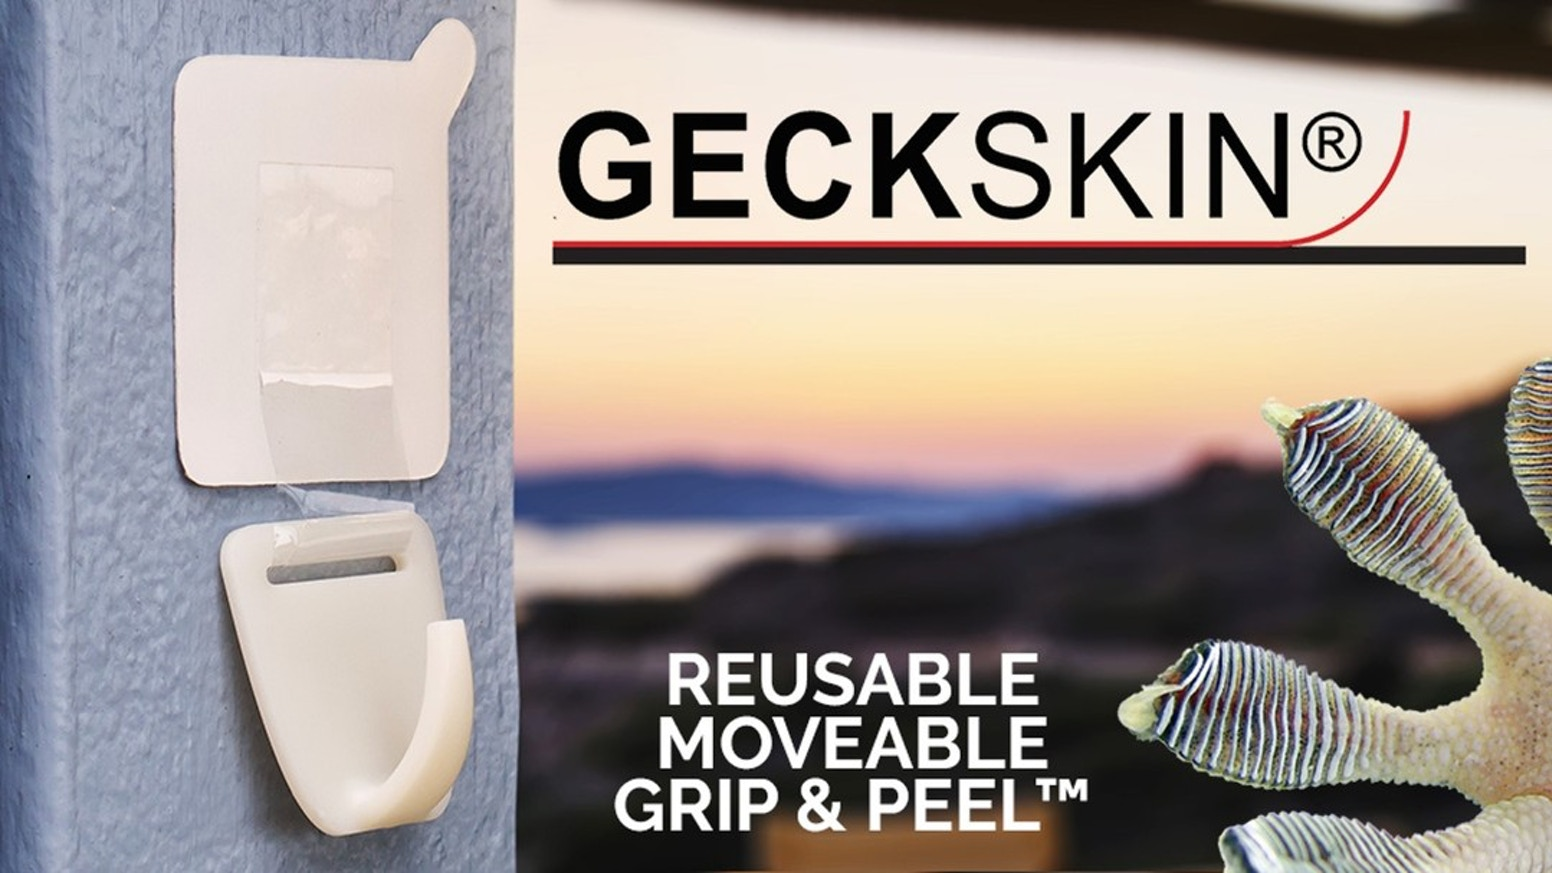 Designed for spontaneous problem solving, Geckskin devices grab onto nearly any surface, attach your stuff & peel without damage.